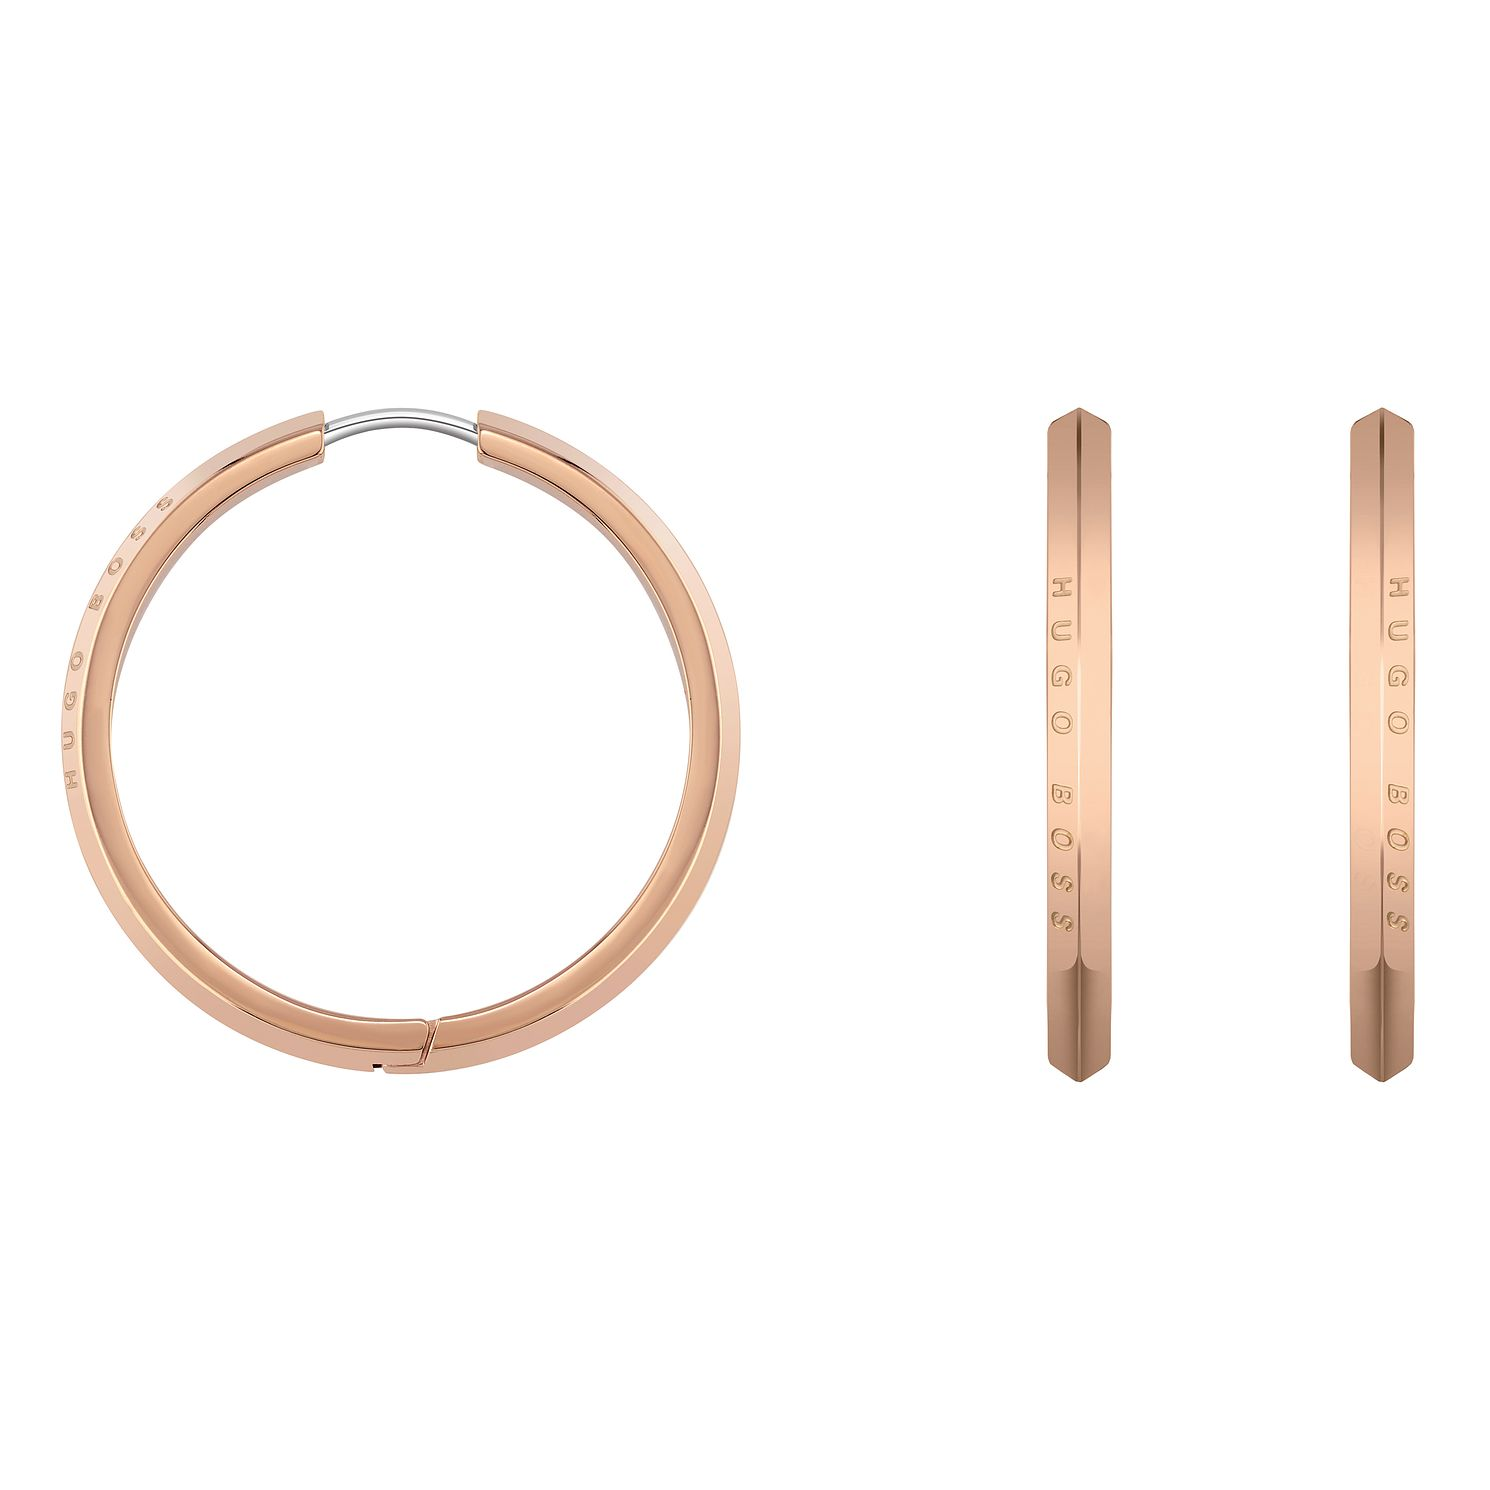 BOSS Insignia Rose Gold Plated Hoop Earrings - Product number 5010845